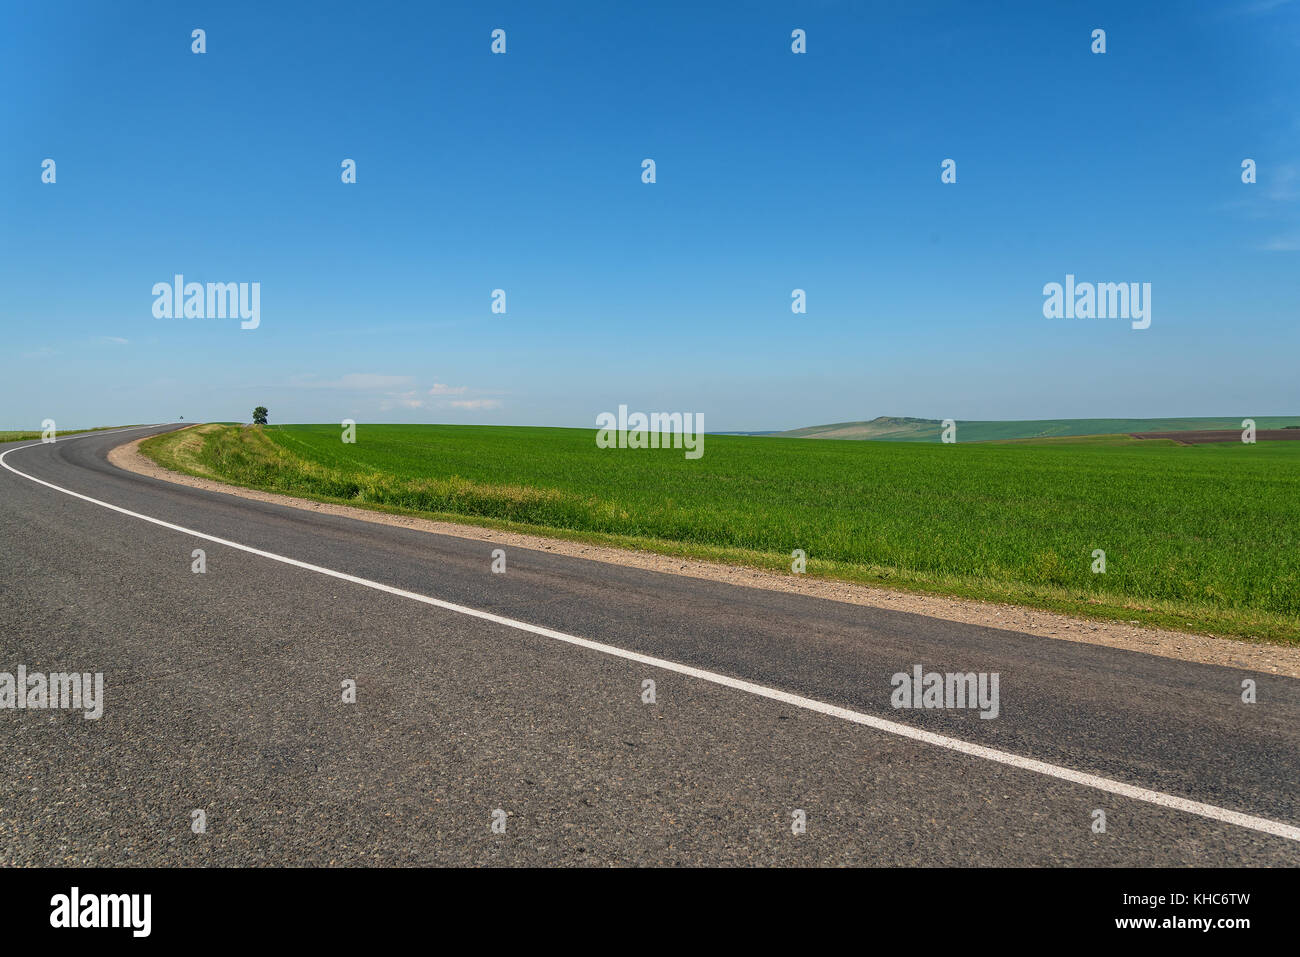 Scenic view from the asphalt road among green fields on the background of mountains and blue sky with clouds Stock Photo